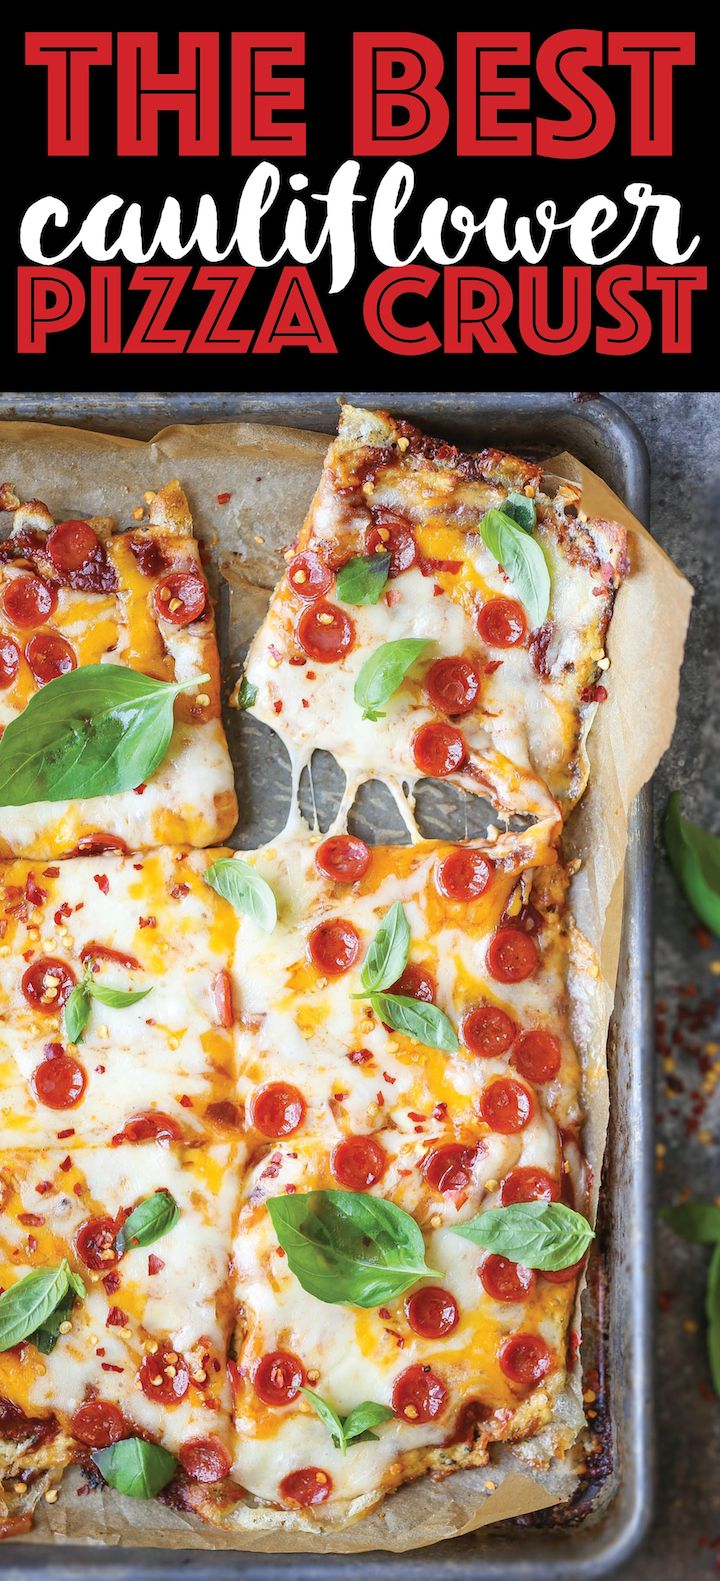 The Best Cauliflower Pizza Crust - Easy to make, grain-free AND so healthy. Plus, you will honestly not even be able to taste a difference! 169.5 calories.